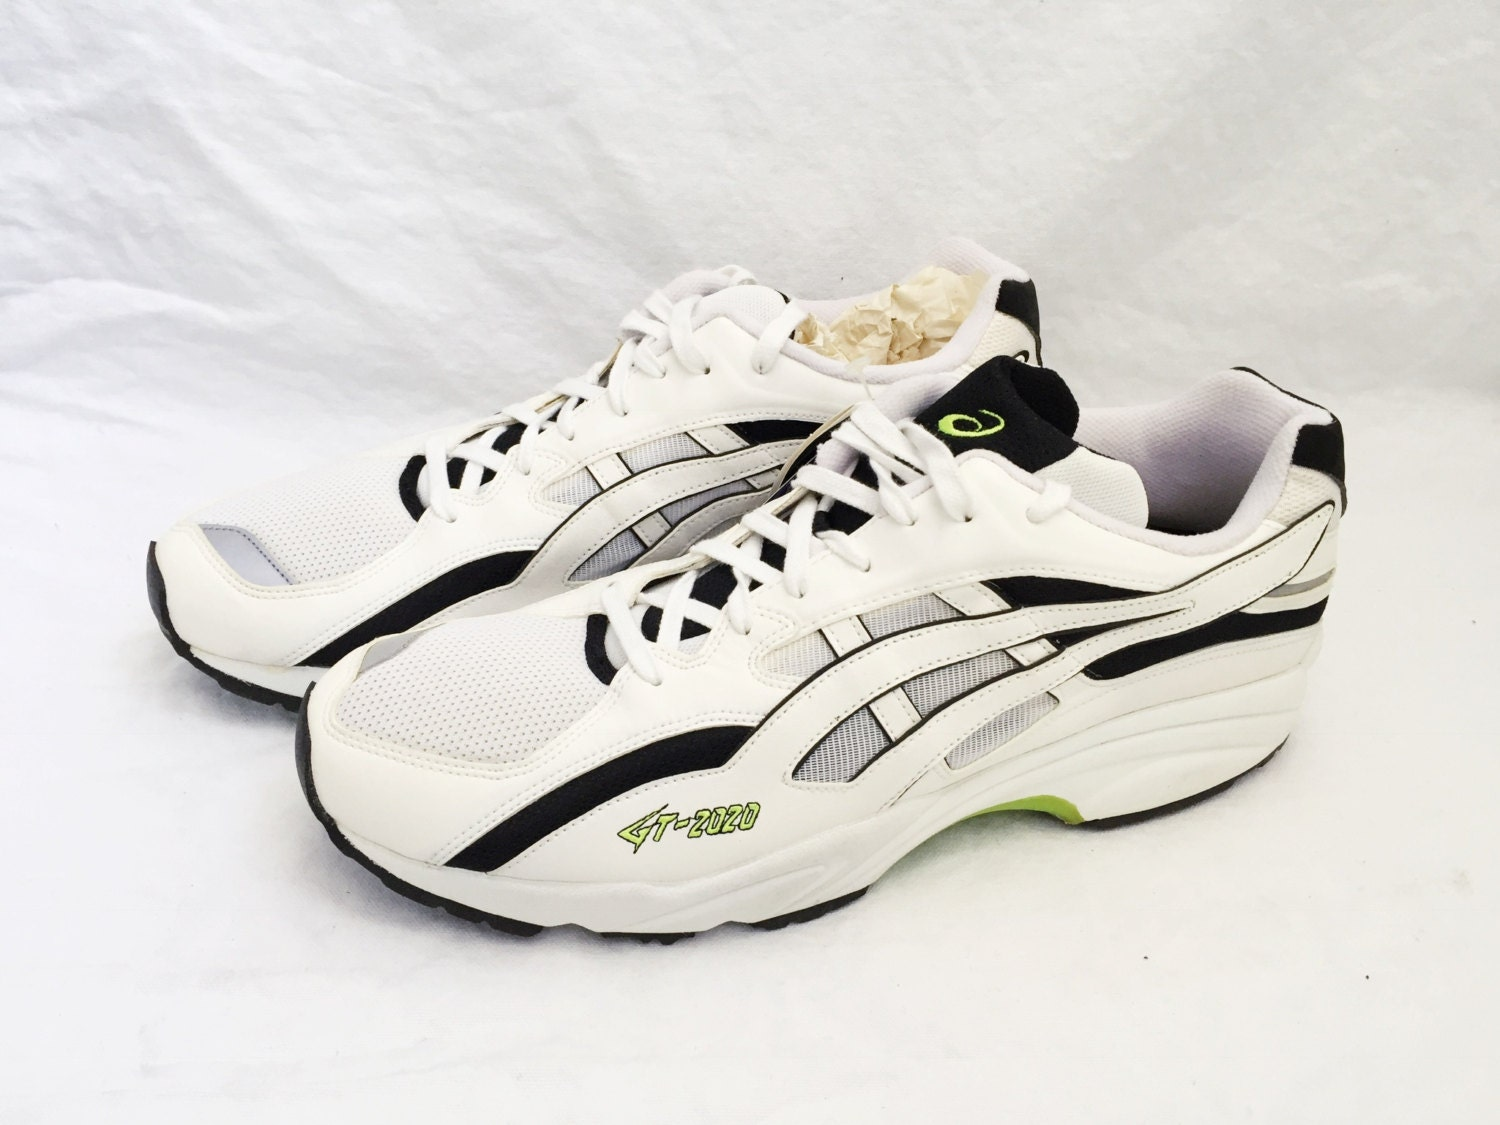 Description. 1997 asics running shoes.